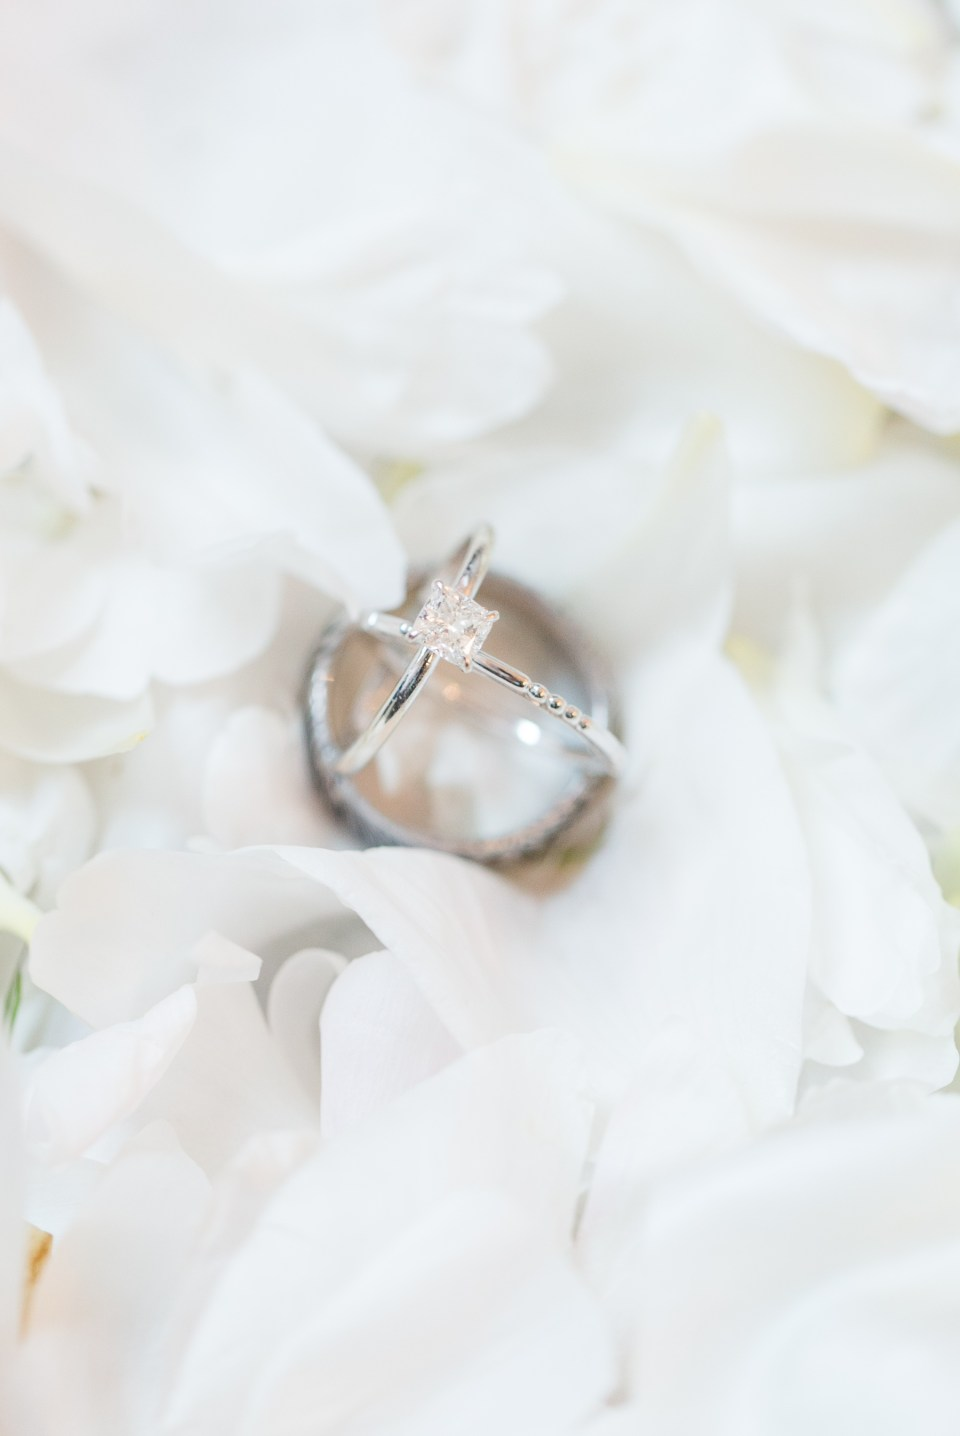 Solitair engagement ring sitting on white flower pedals